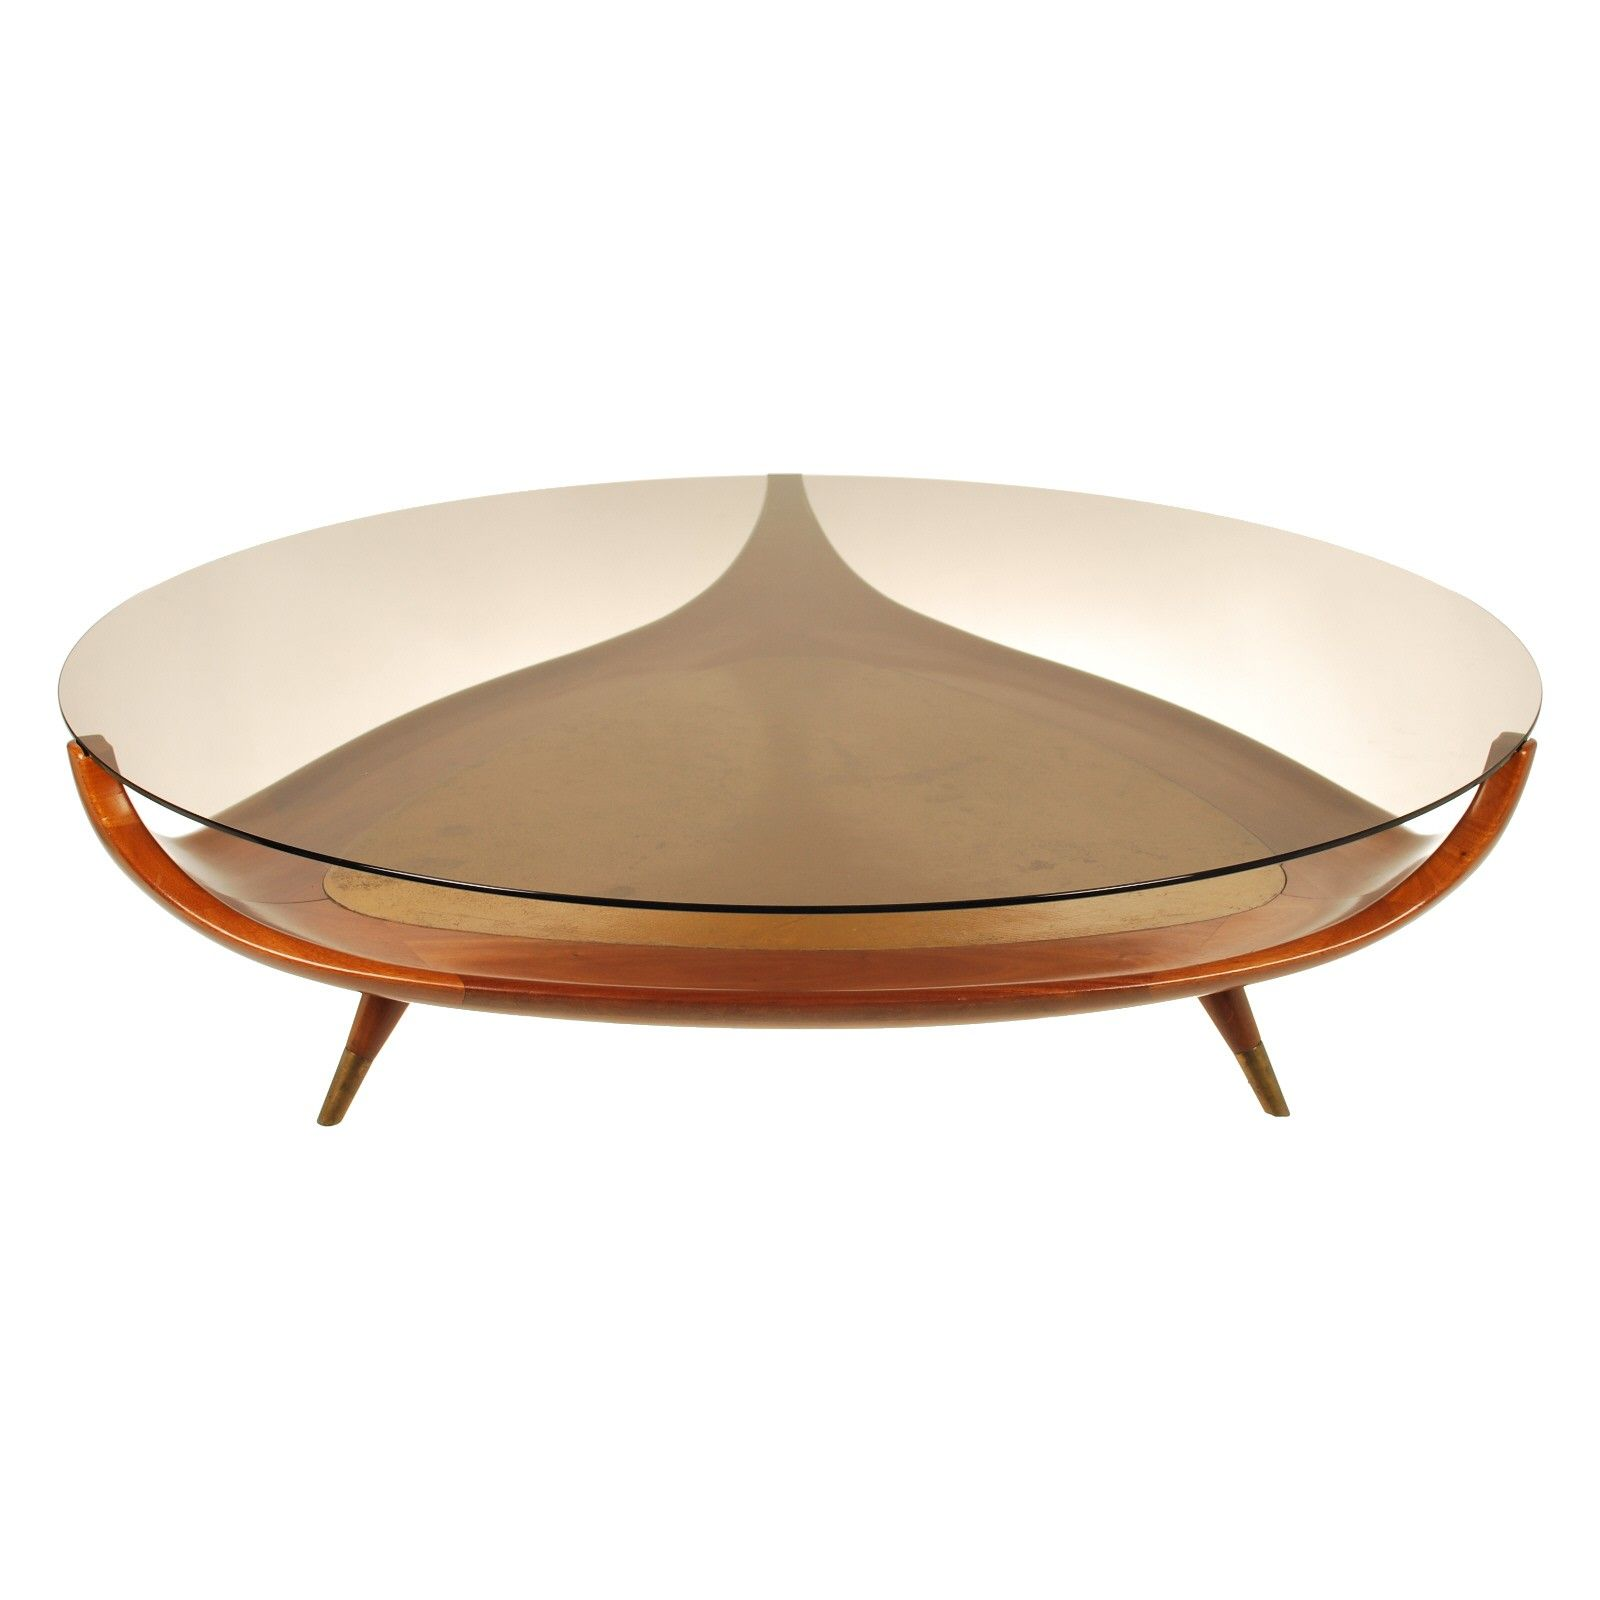 Furniture Round Brown Glass Coffee Table With Curvy